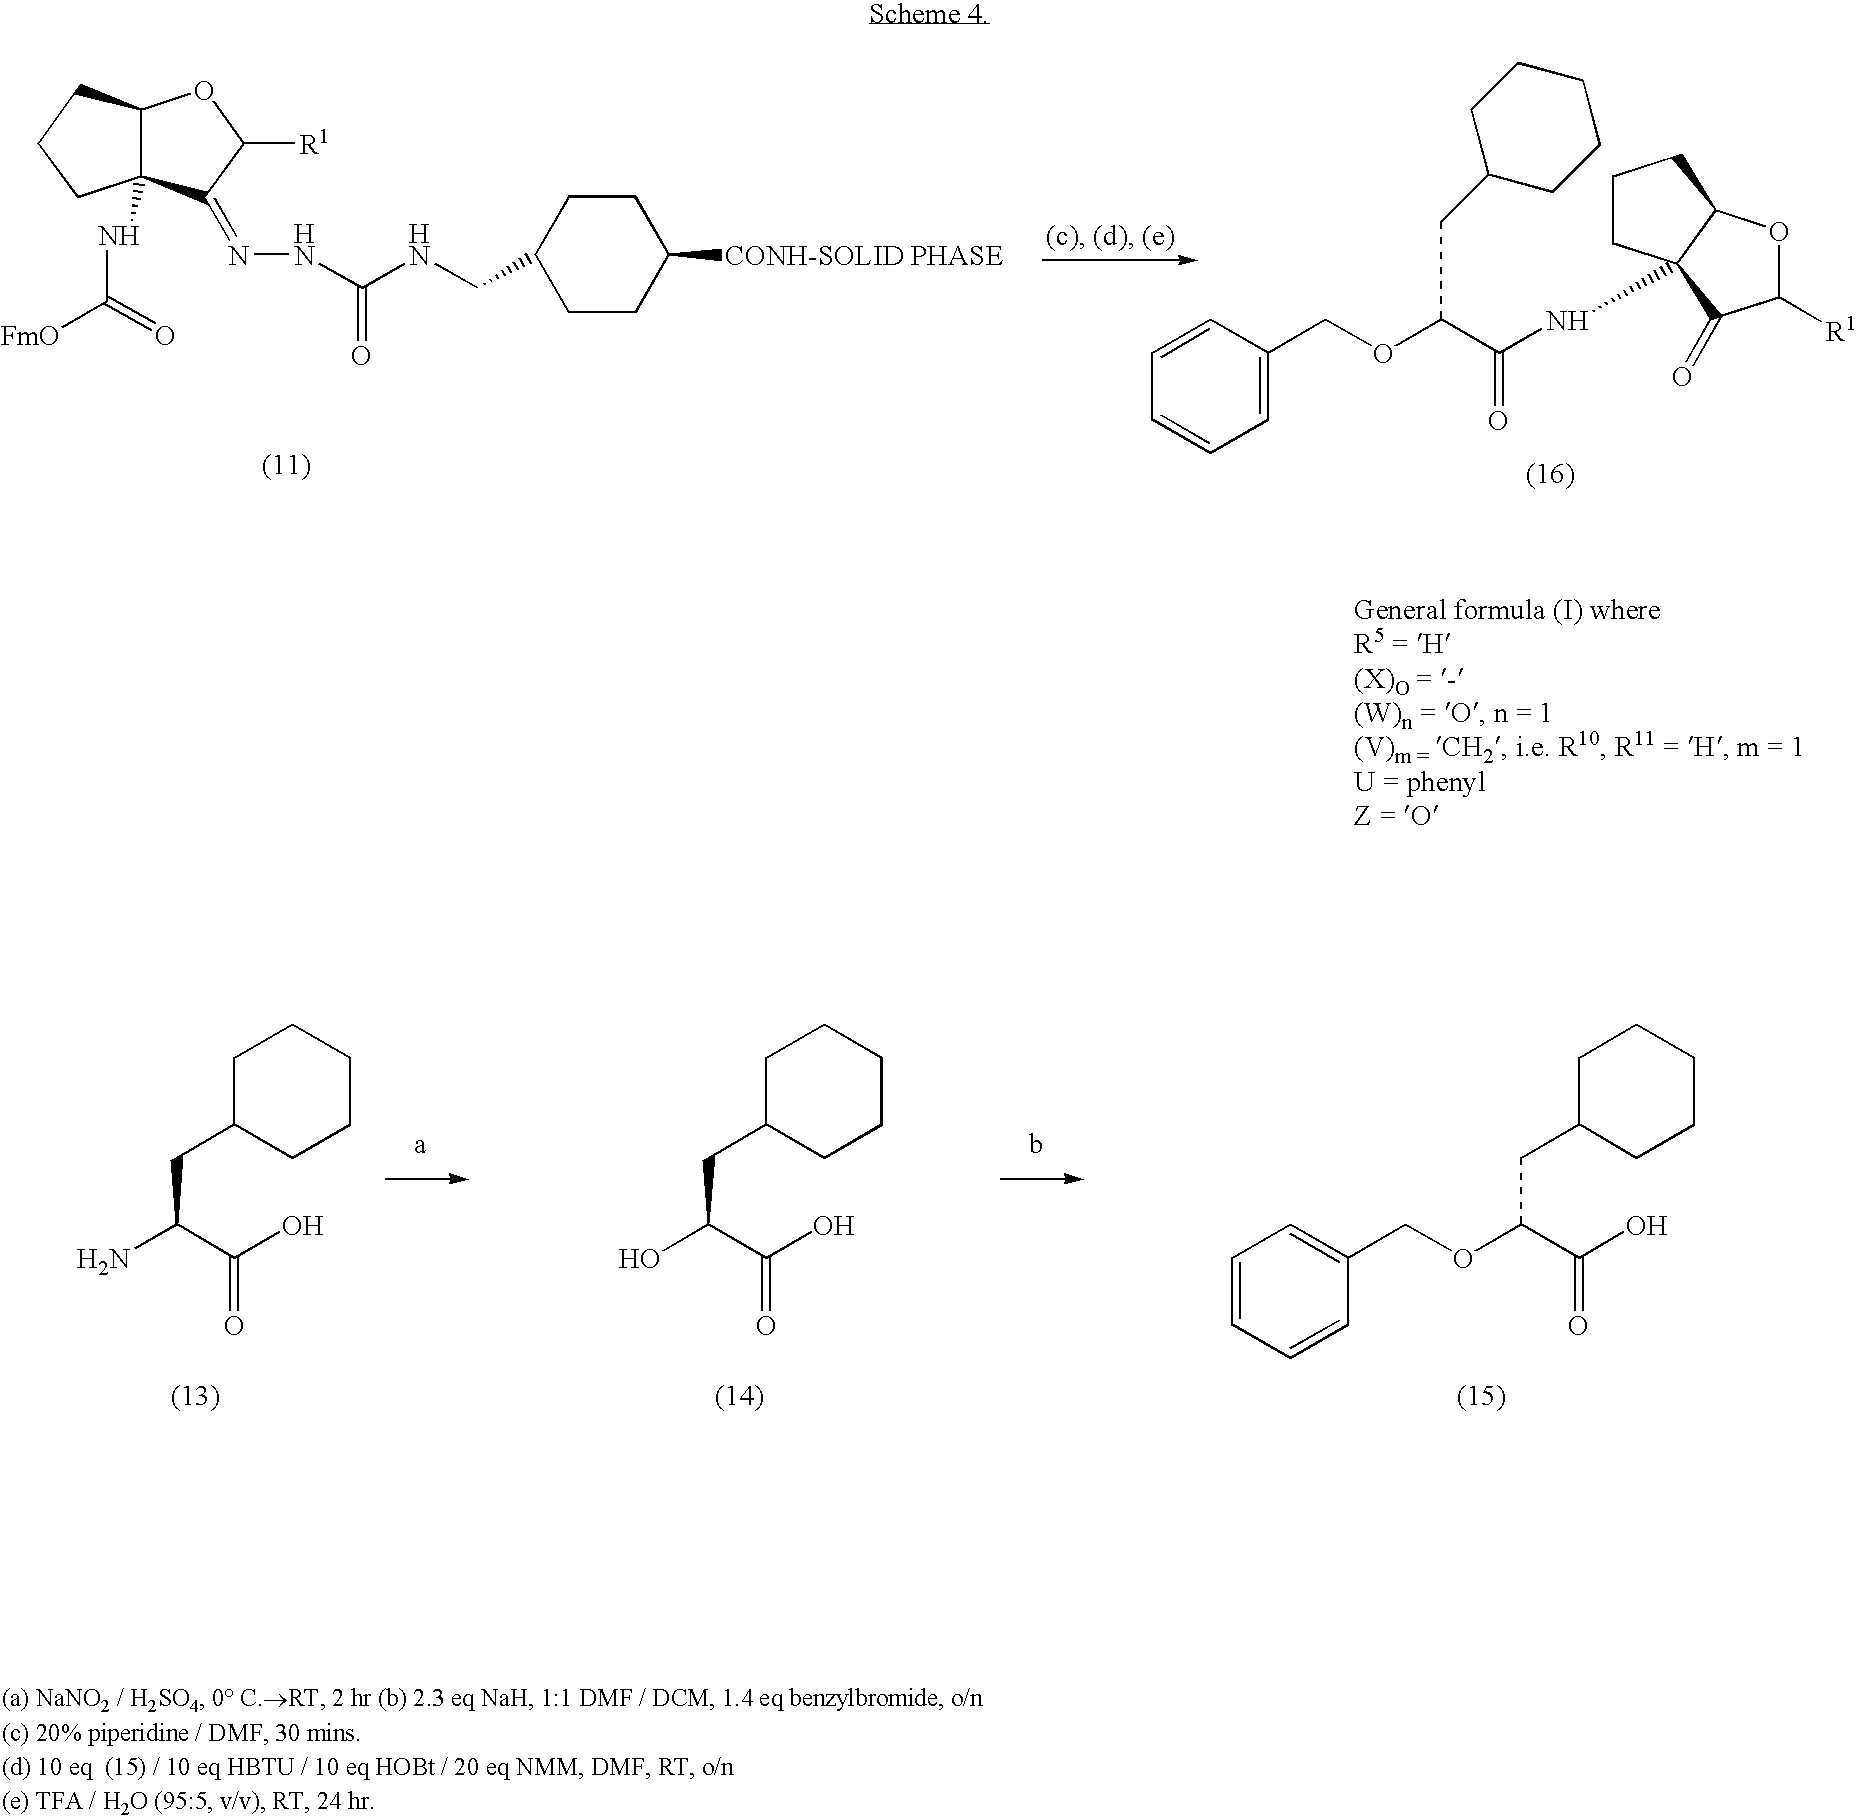 US20040106805A1 - Inhibitors of cruzipain and other cysteine